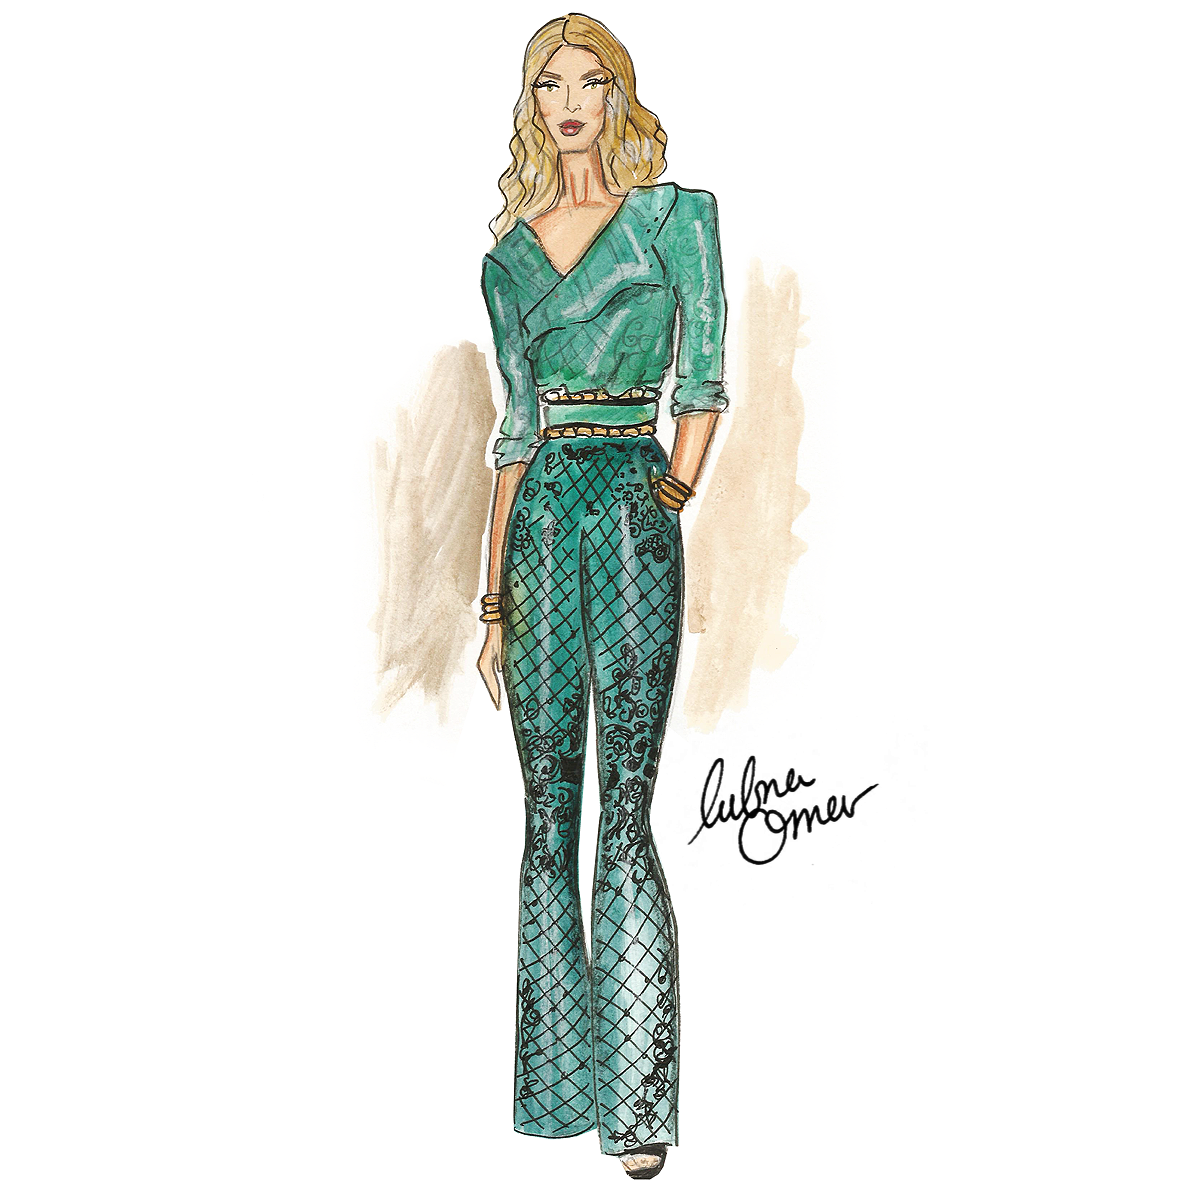 Rosie Huntington-Whiteley in Balmain x H&M illustration by Lubna Omar